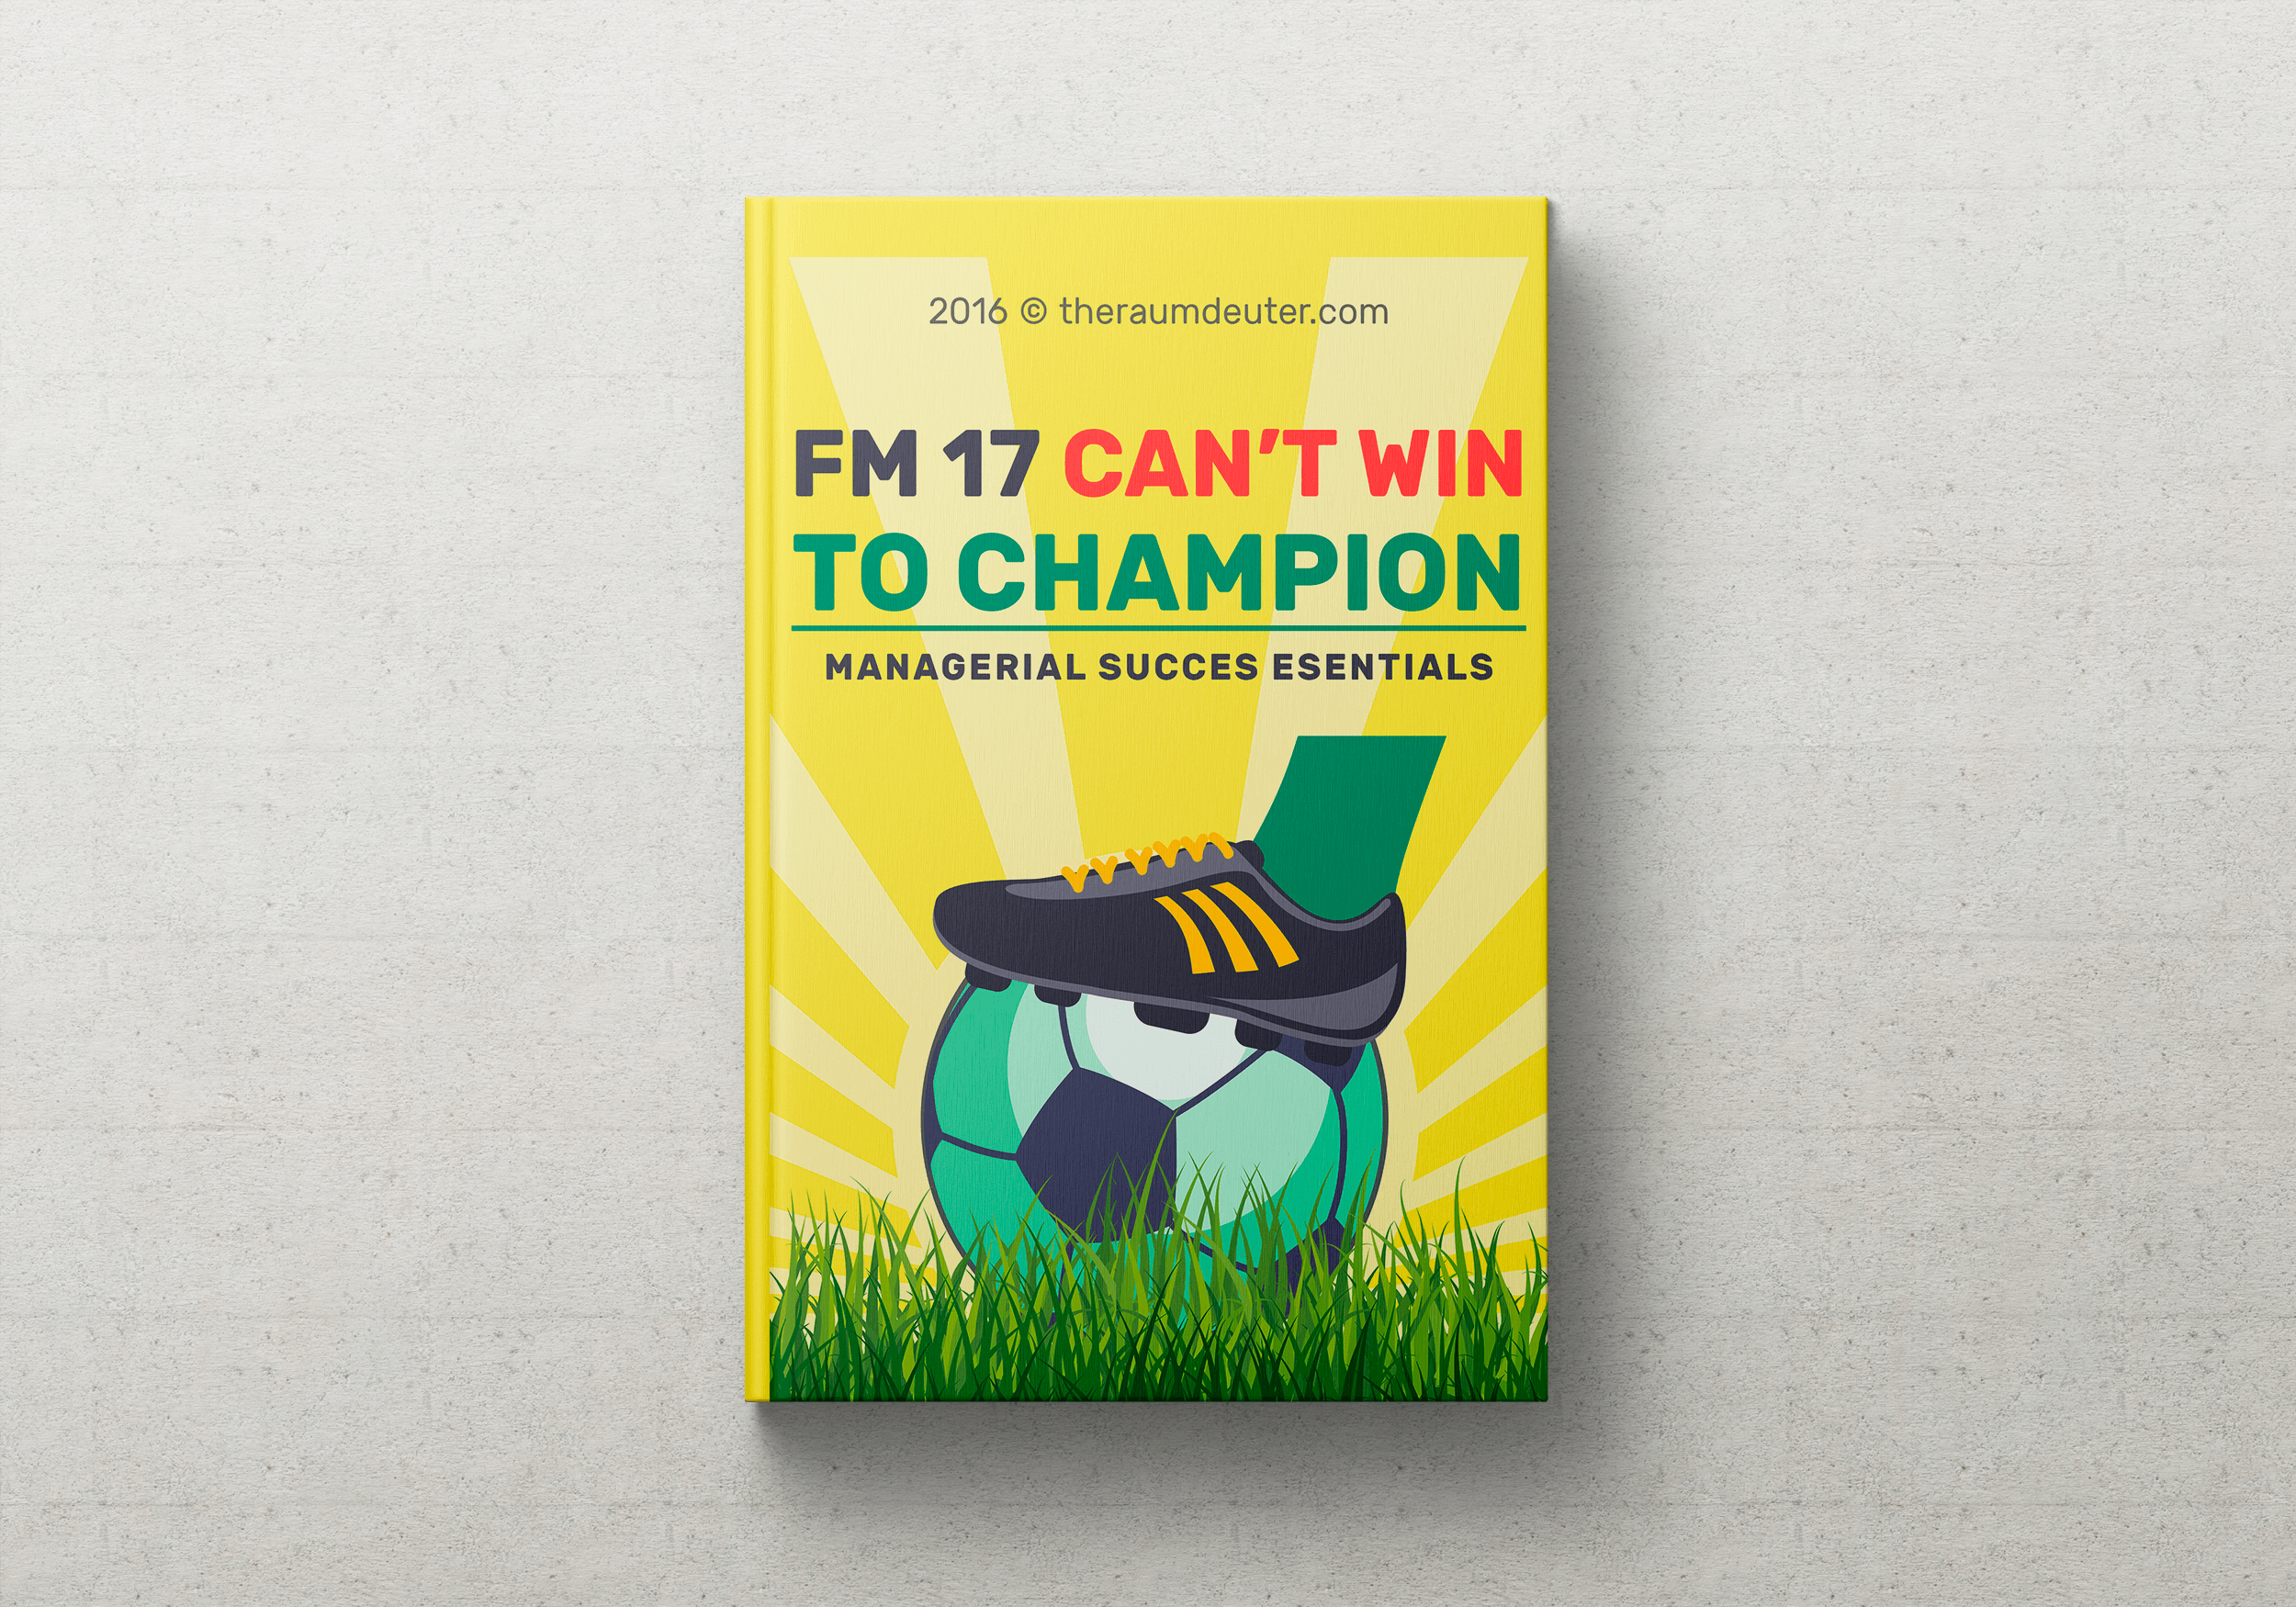 FM 17 CAN'T WIN TO CHAMPION HANDBOOK COVER